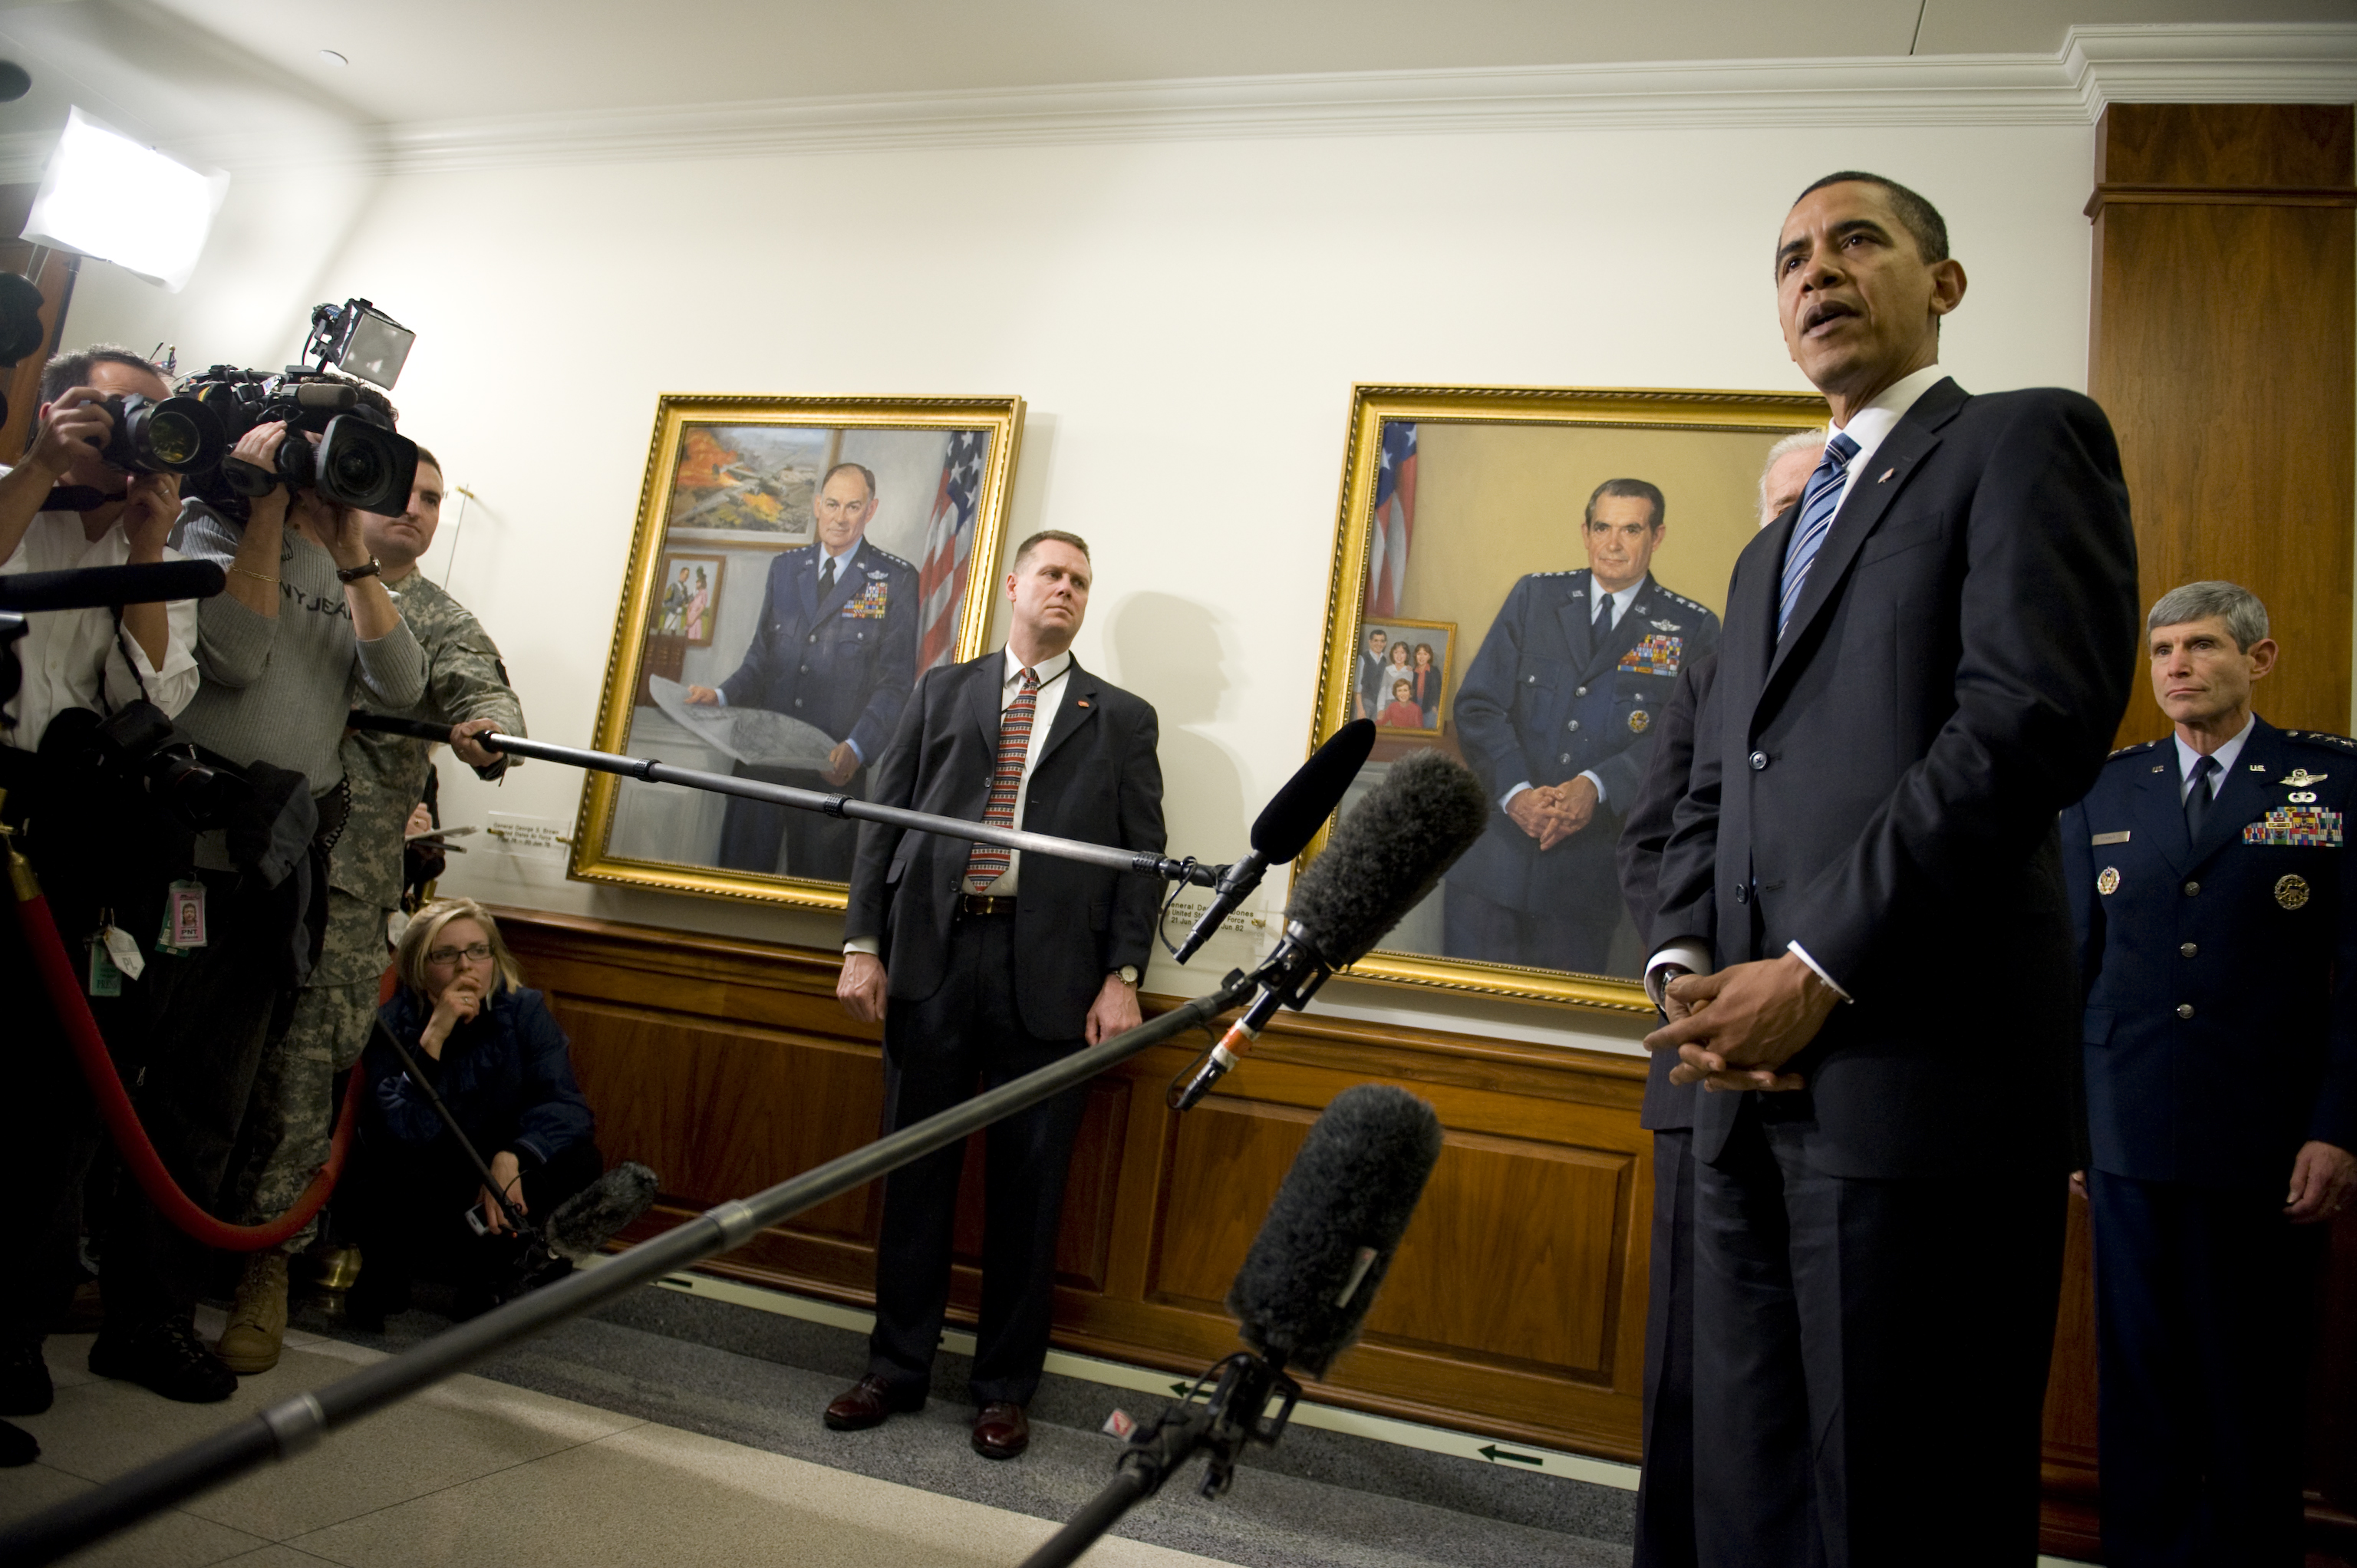 http://upload.wikimedia.org/wikipedia/commons/f/f7/Barack_Obama_makes_first_visit_to_the_Pentagon_1-28-09_3.jpg